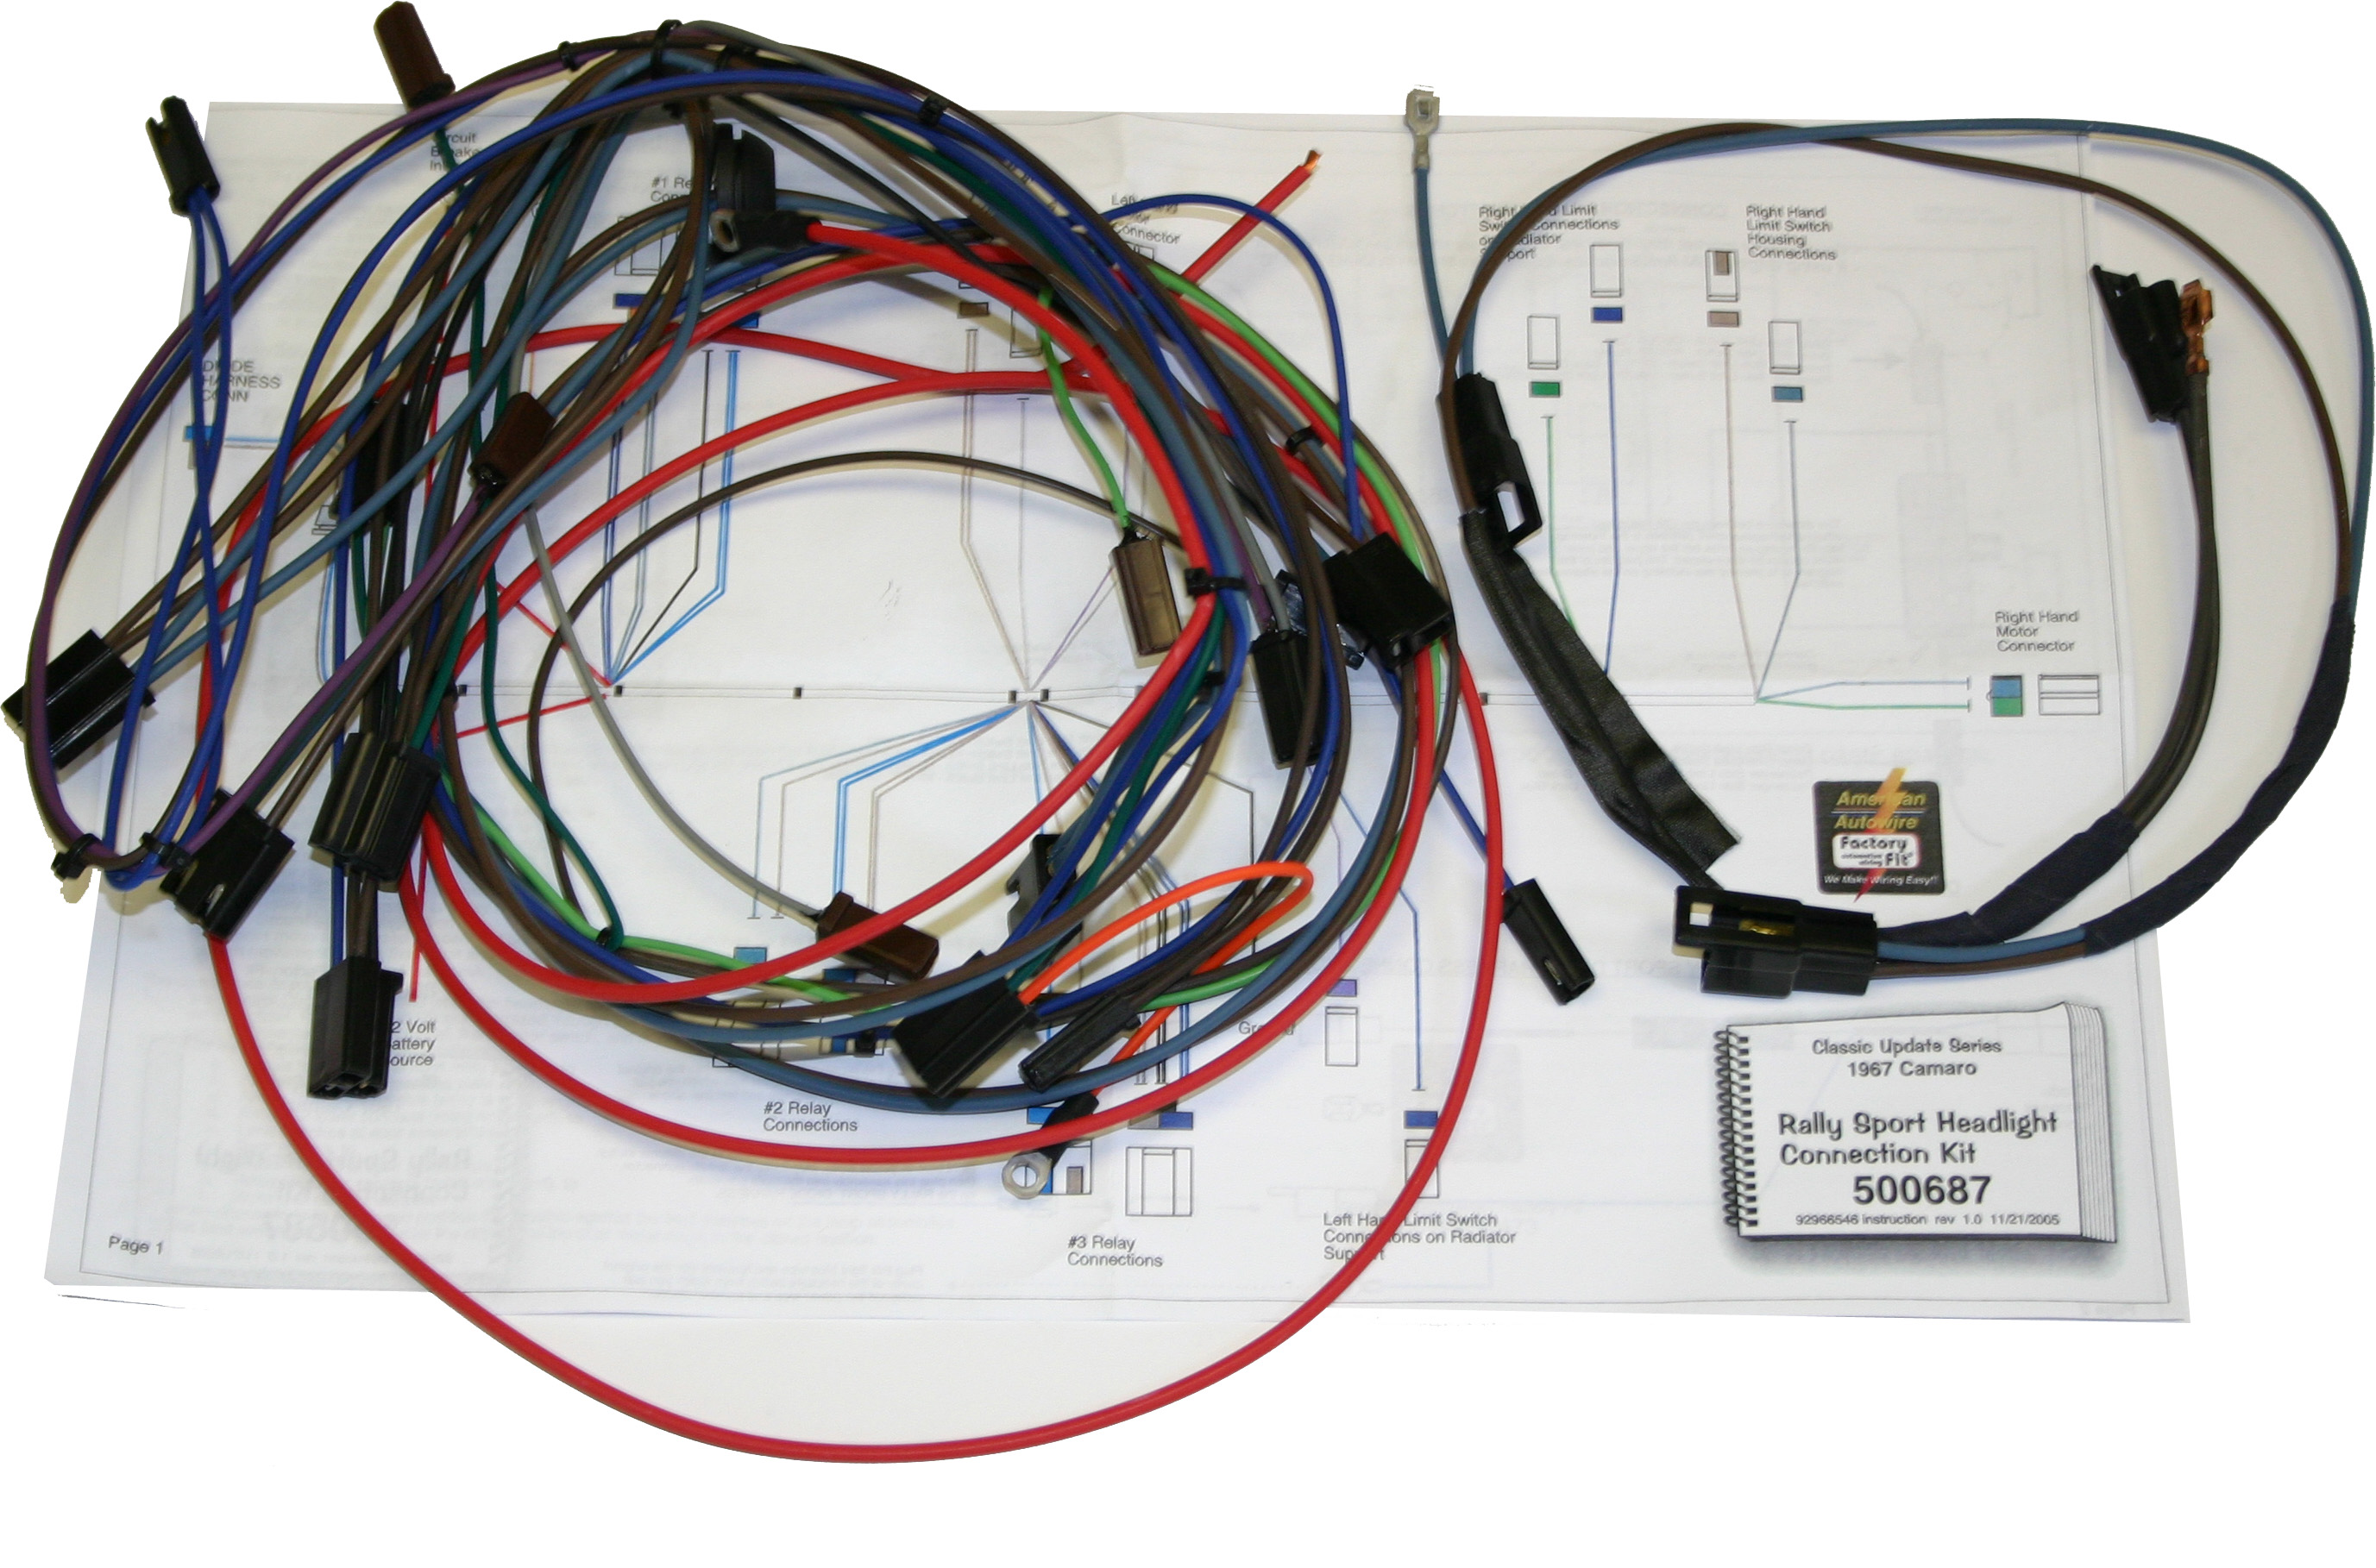 67 Camaro Wire Harness Wiring Diagrams Source 68 Mustang Explore Diagram On The Net U2022 Porsche